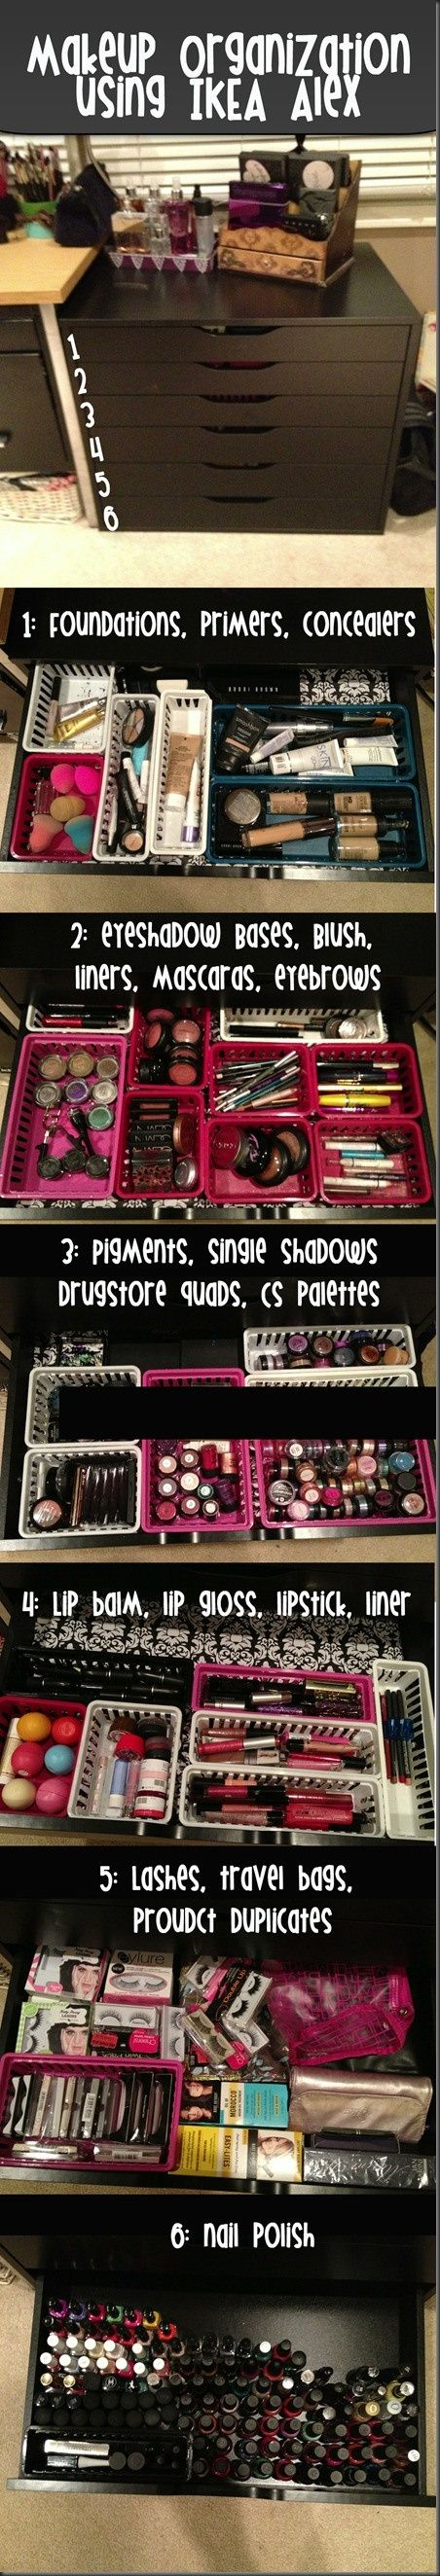 IKEA ALEX makeup storage organization  For the Home  Pinterest